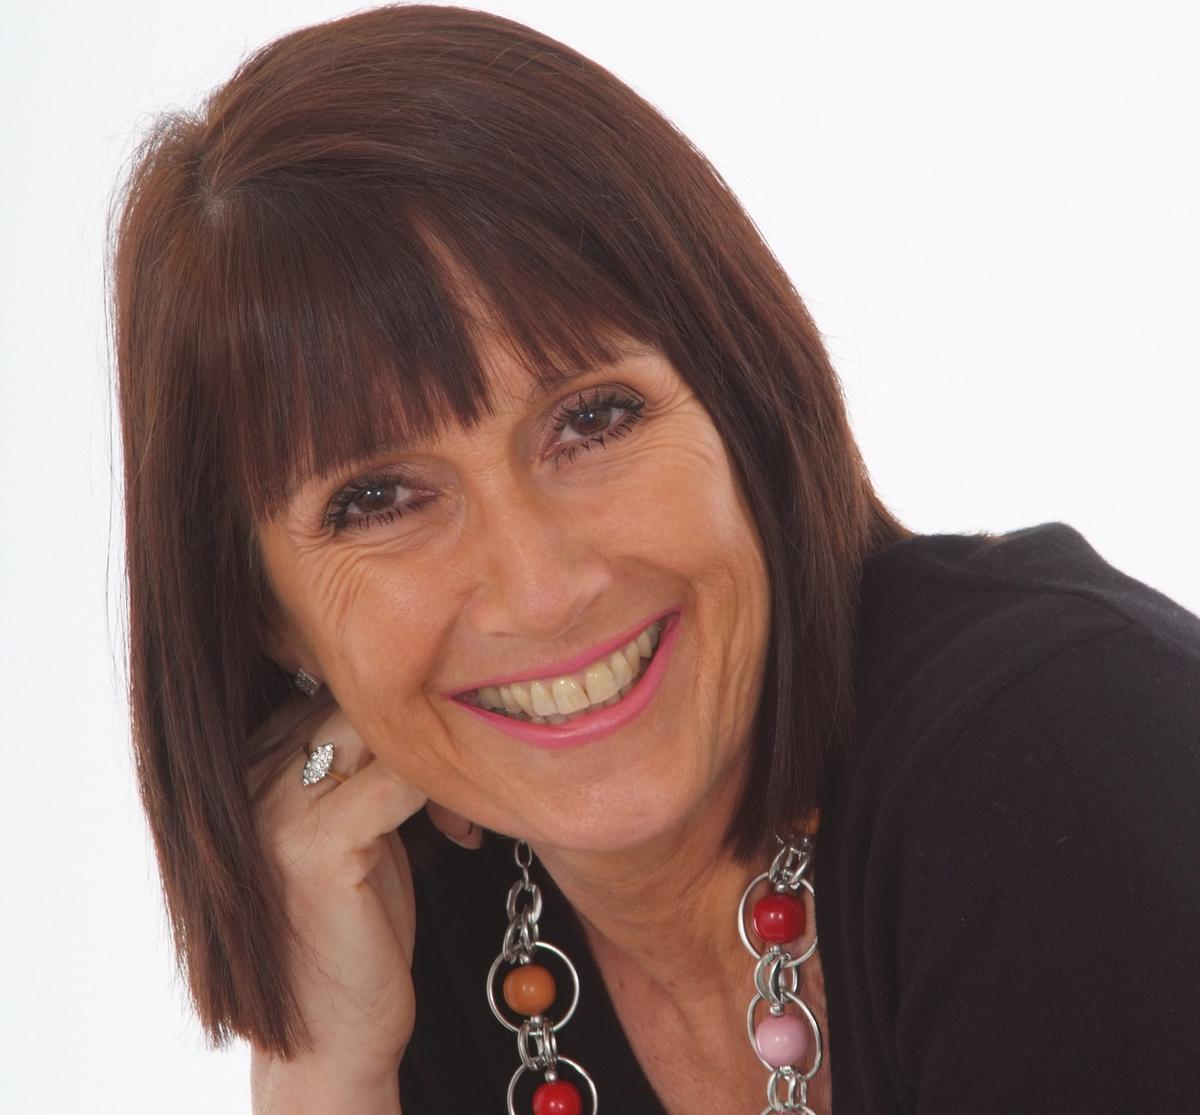 Gill Morris has her own business consultancy and skills training company GMT Business Training